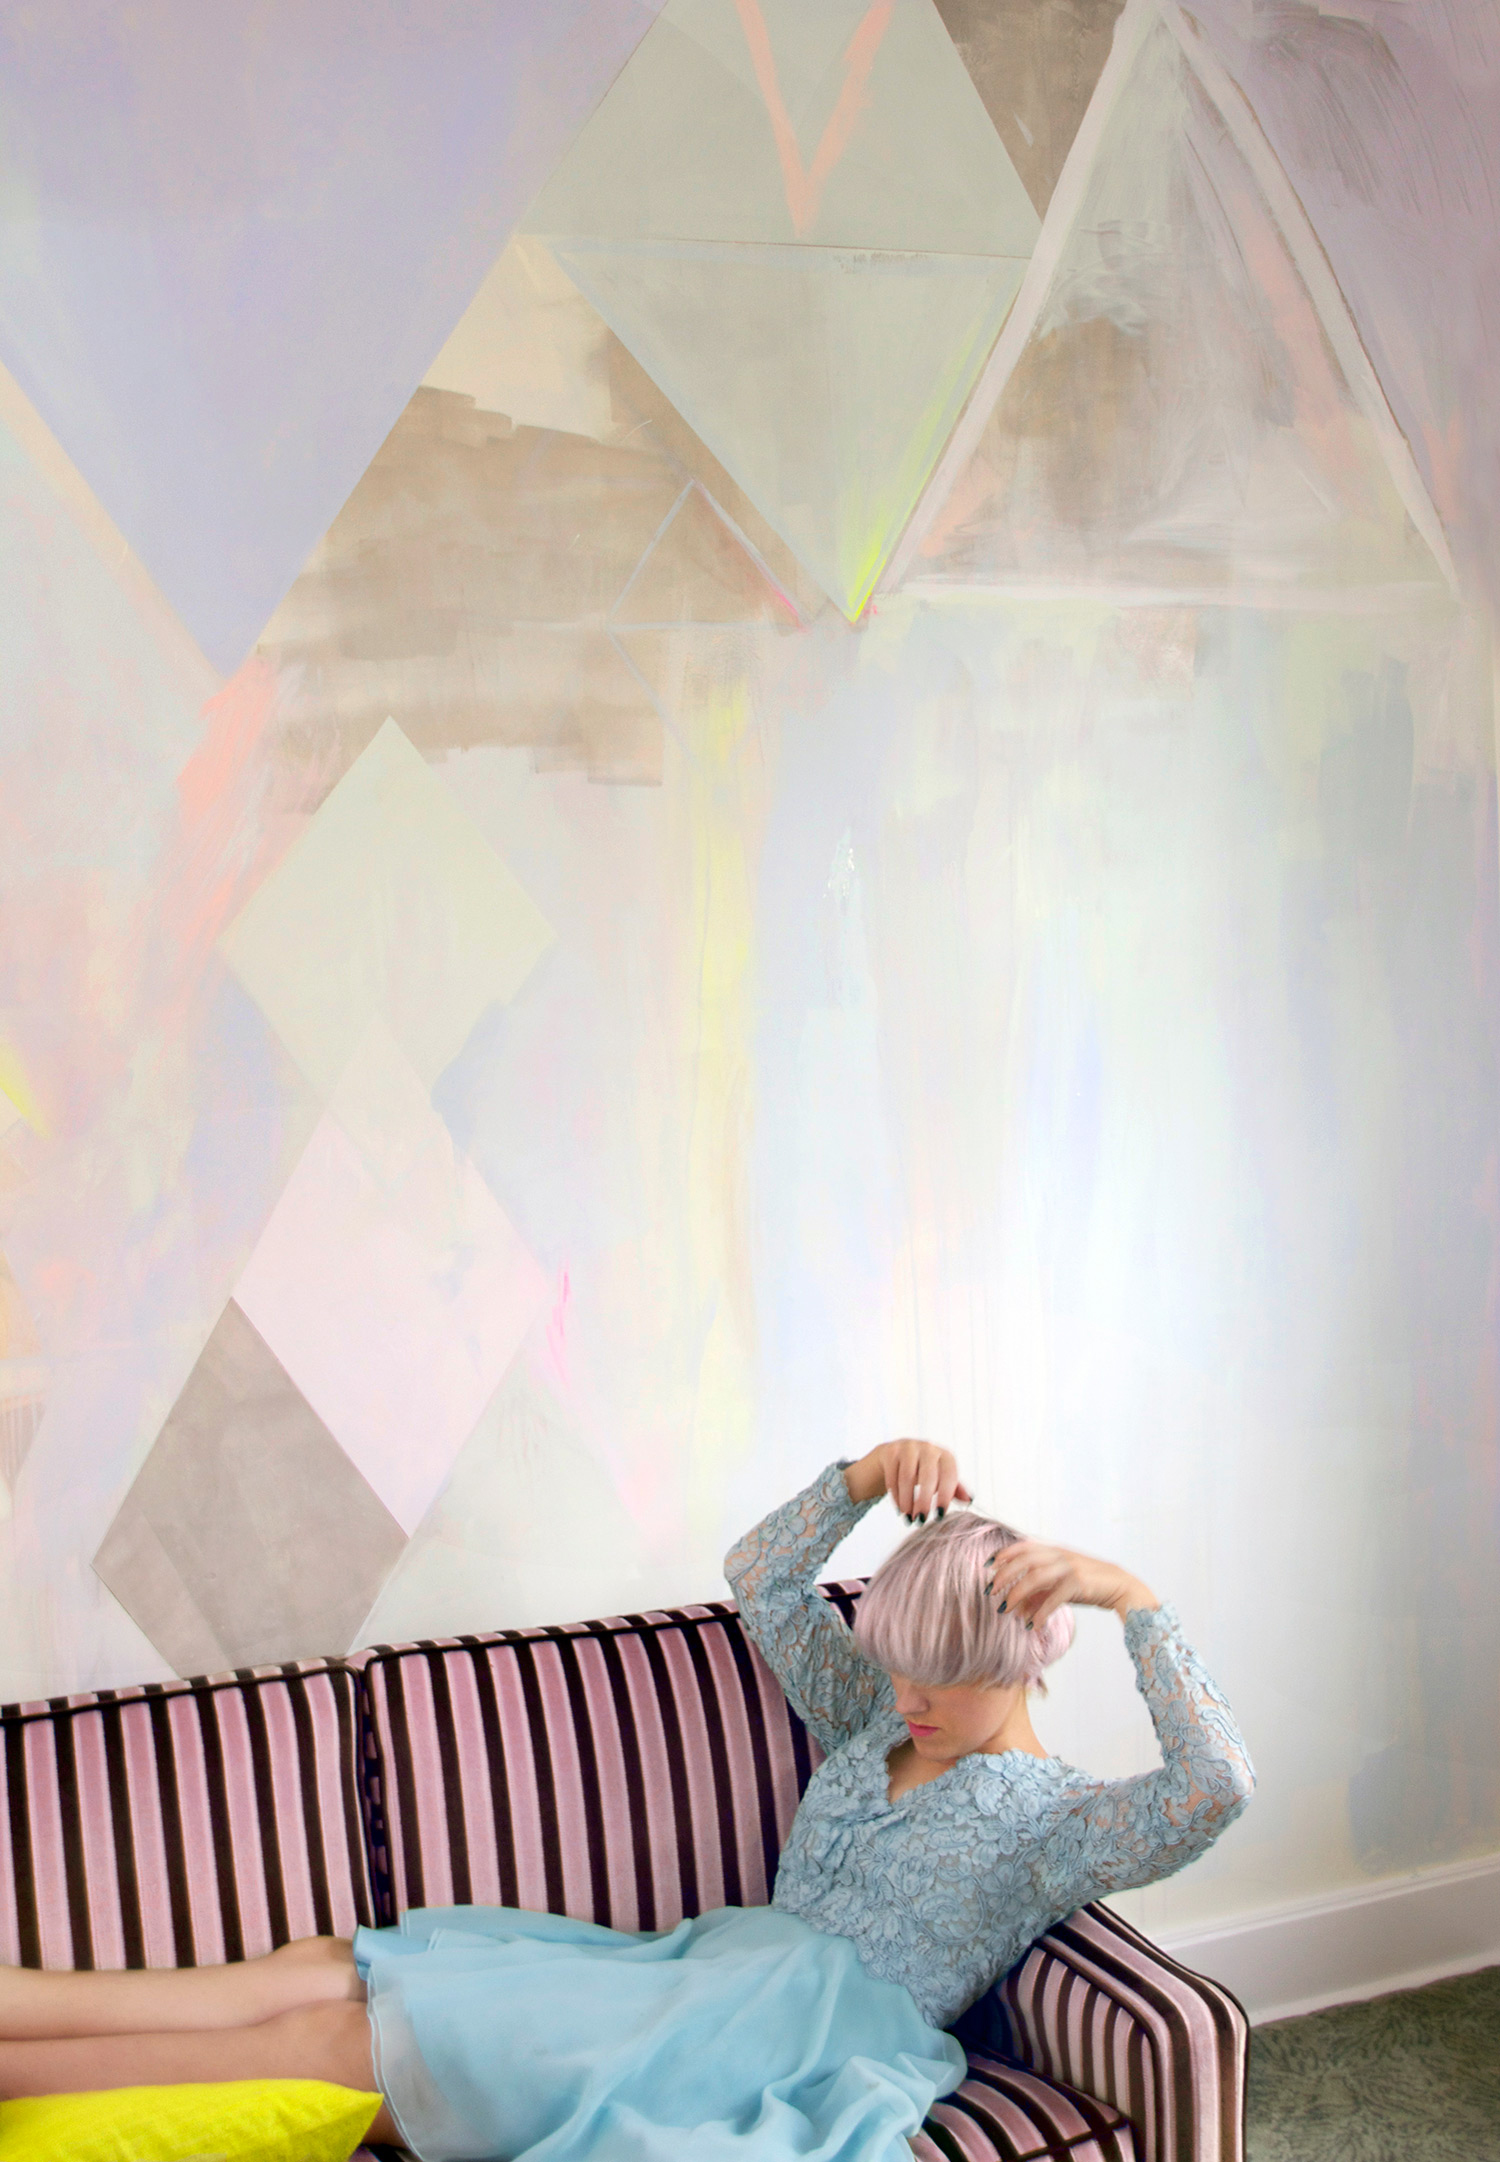 Diamond abstract pastel mural with metallic paint and neon yellow highlights, featuring vintage striped velvet couch with model playfully lounging in pastel blue lace vintage dress and cropped hair.